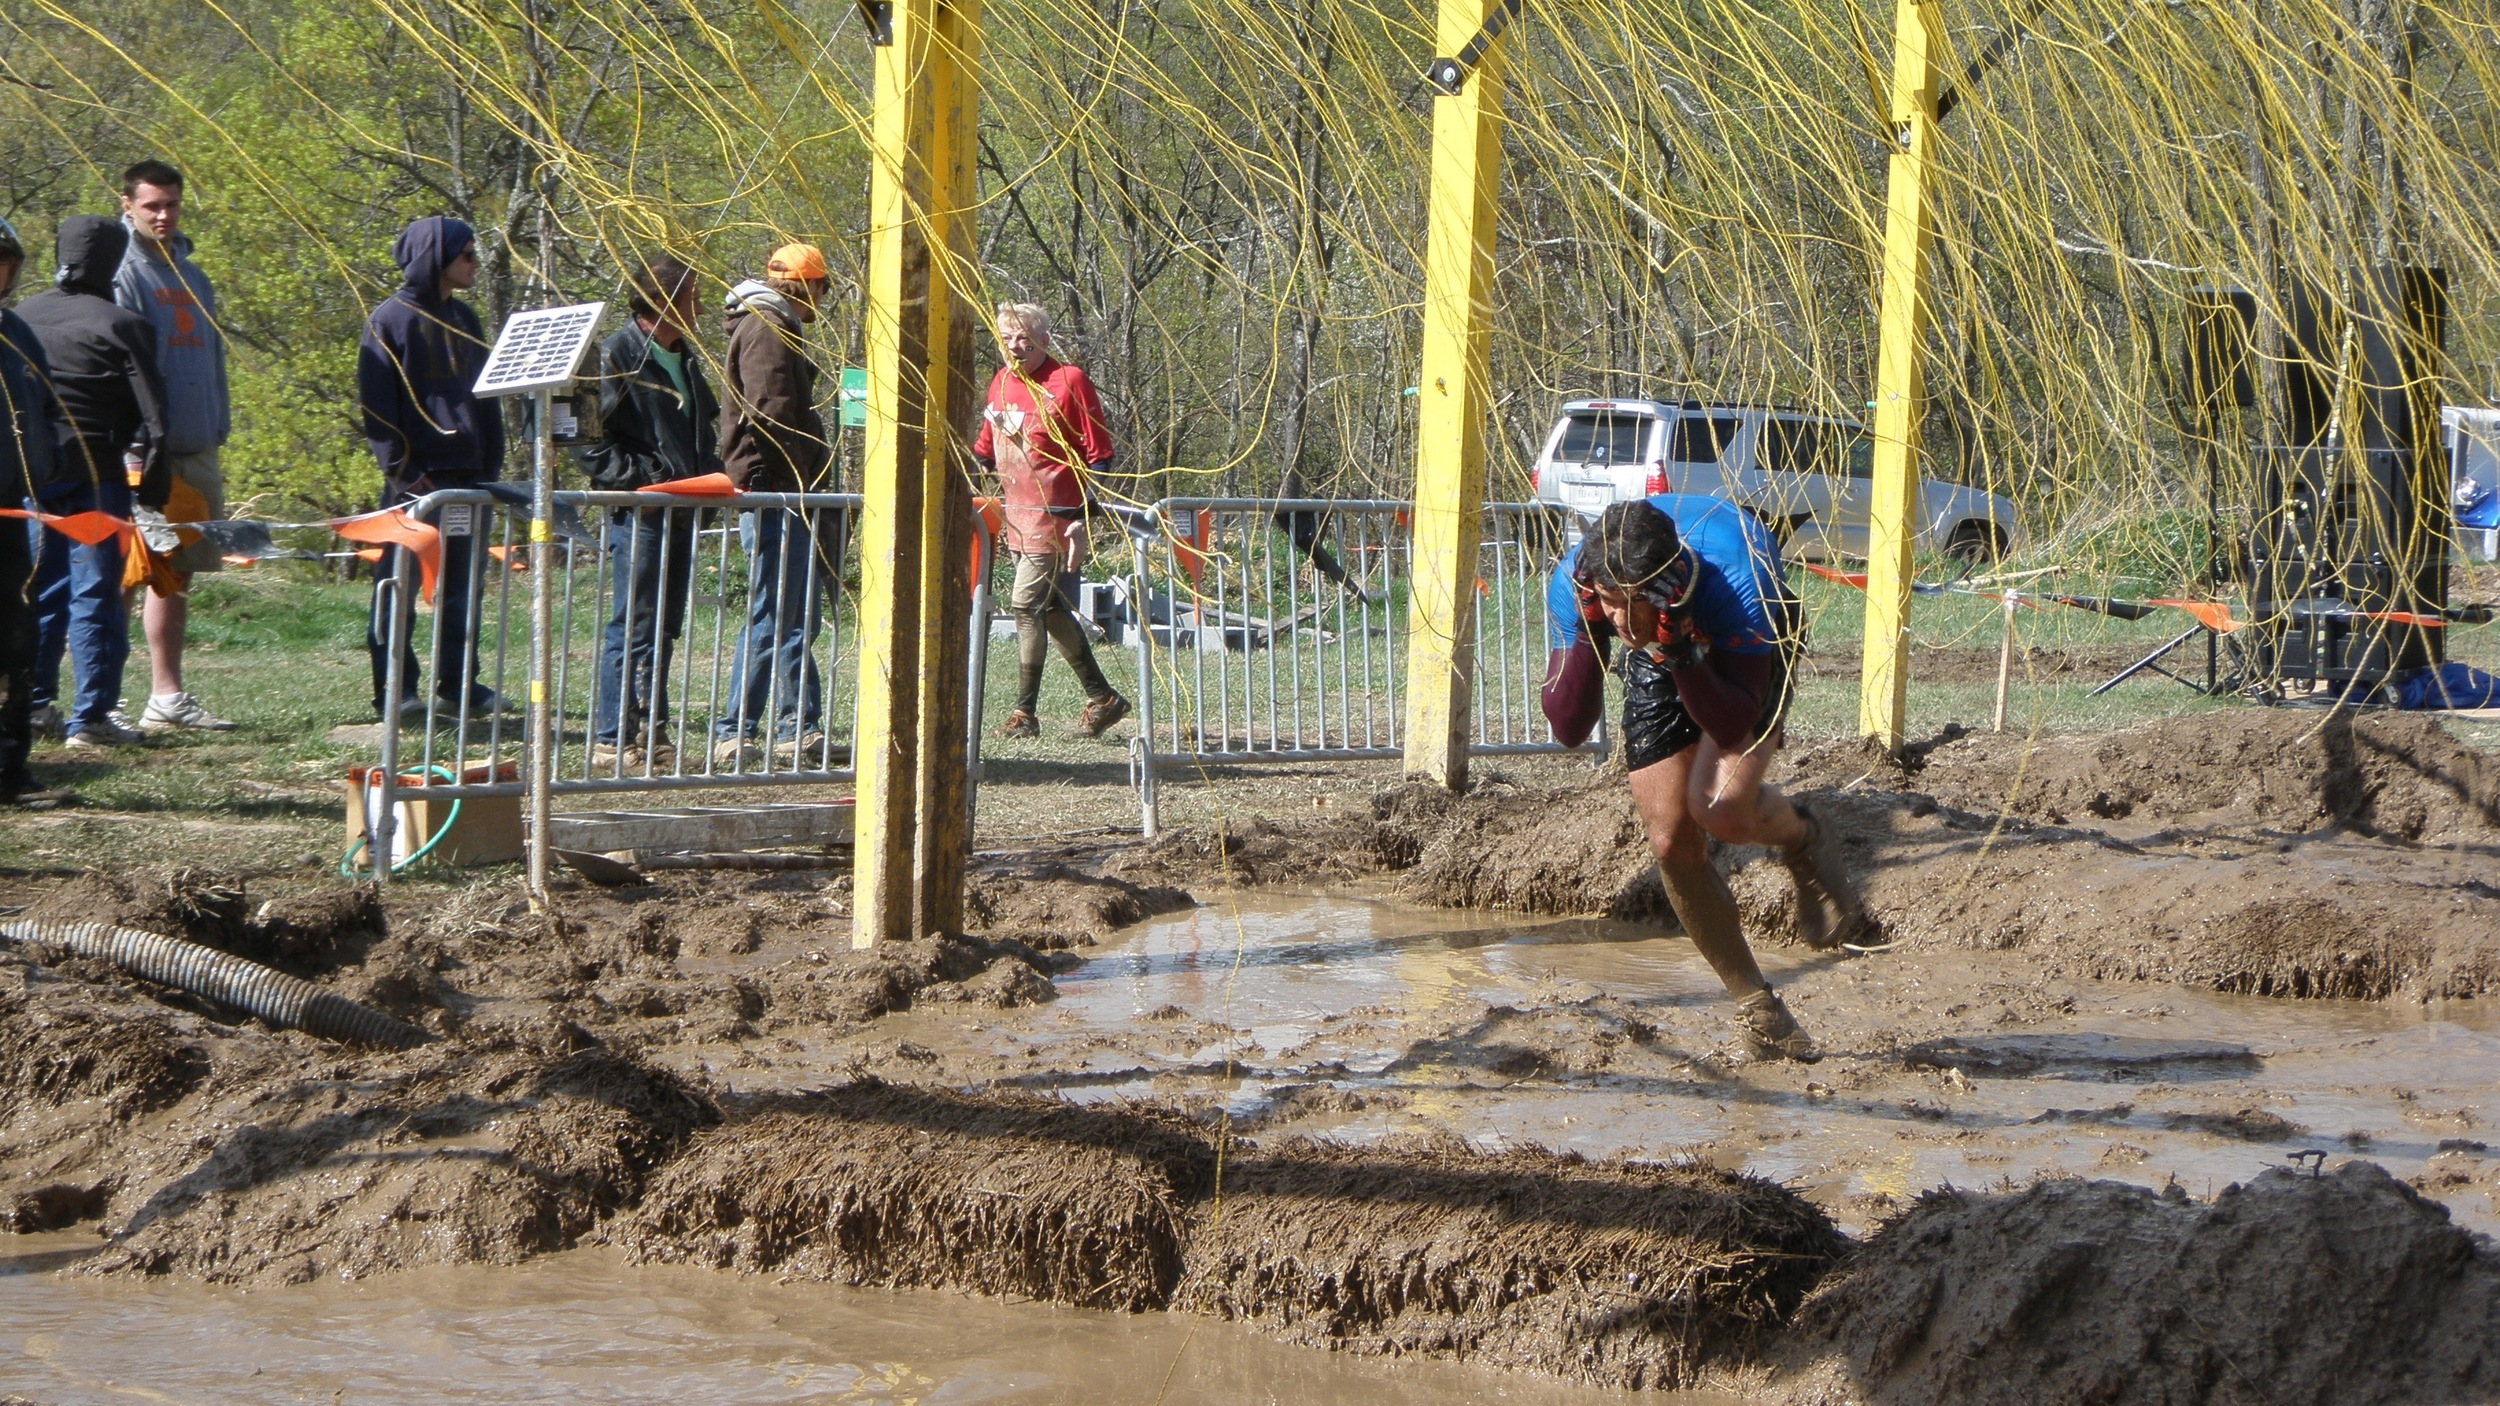 Electroshock Therapy, final obstacle before the finish line. I did get zapped on this one. Not the face!